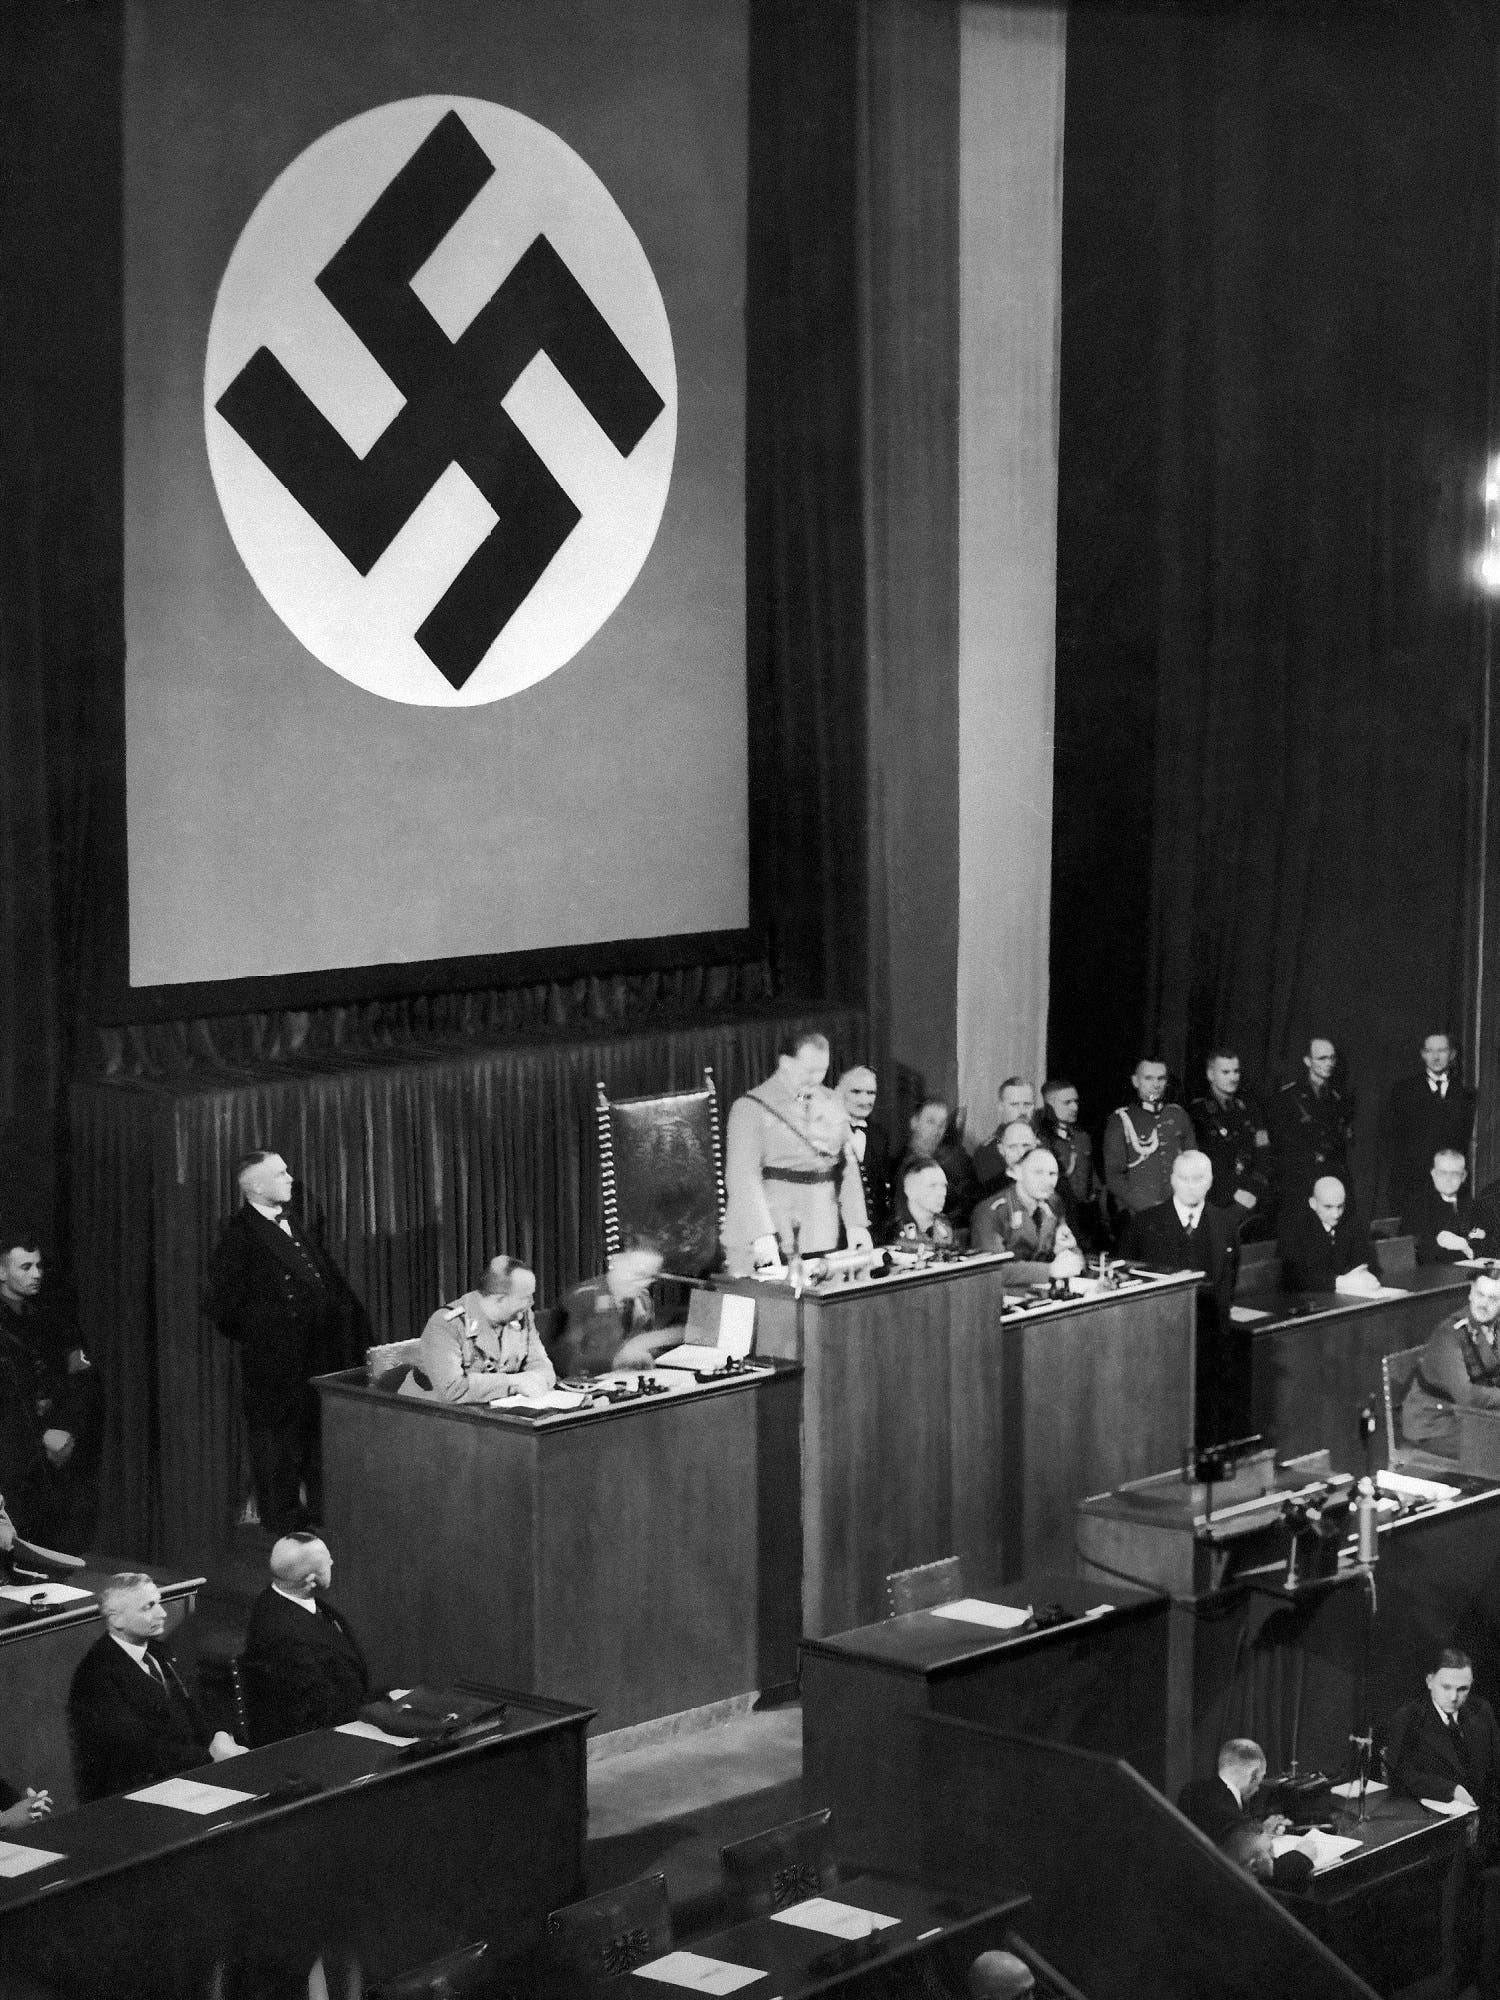 President Goering has opened the new Reichstag session in the Kroll Opera Building in Berlin, Dec. 12, 1933. (AP)